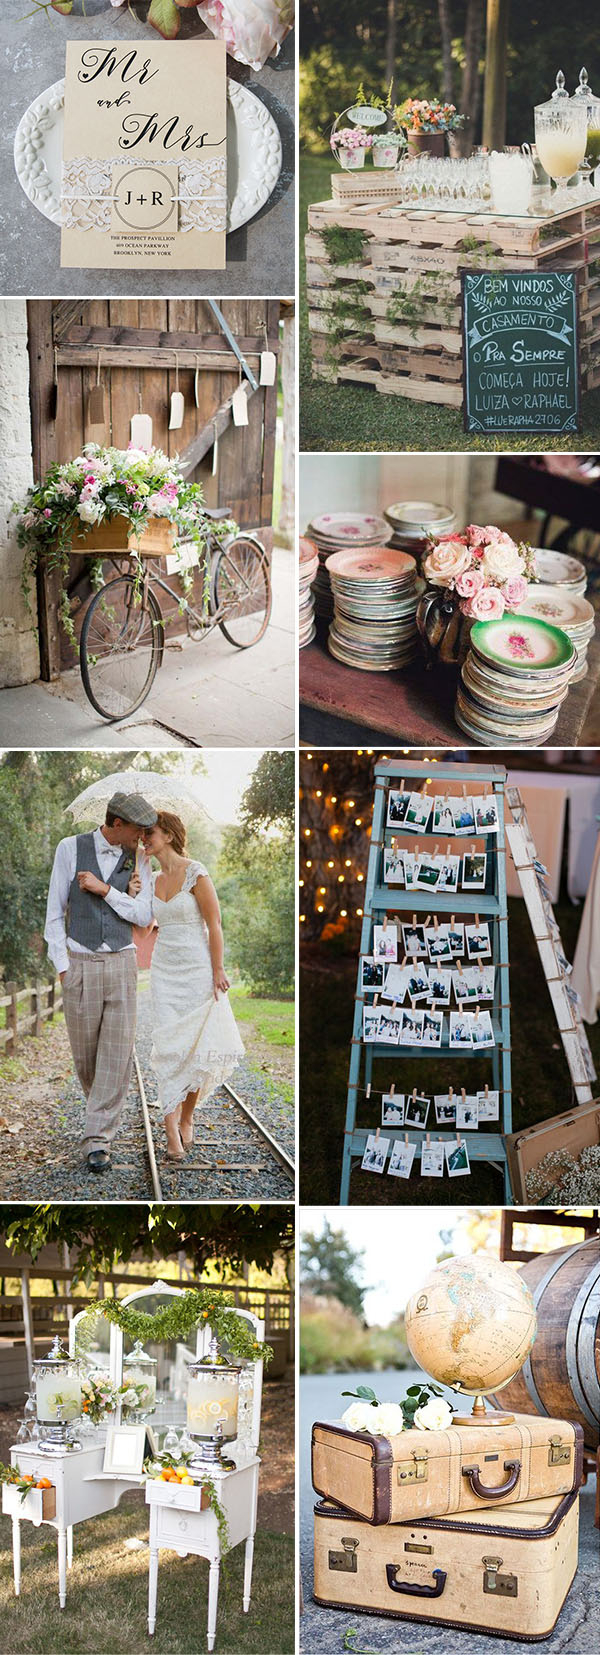 6 Awesome Vintage Wedding Theme Ideas To Inspire You in Vintage Backyard Wedding Ideas